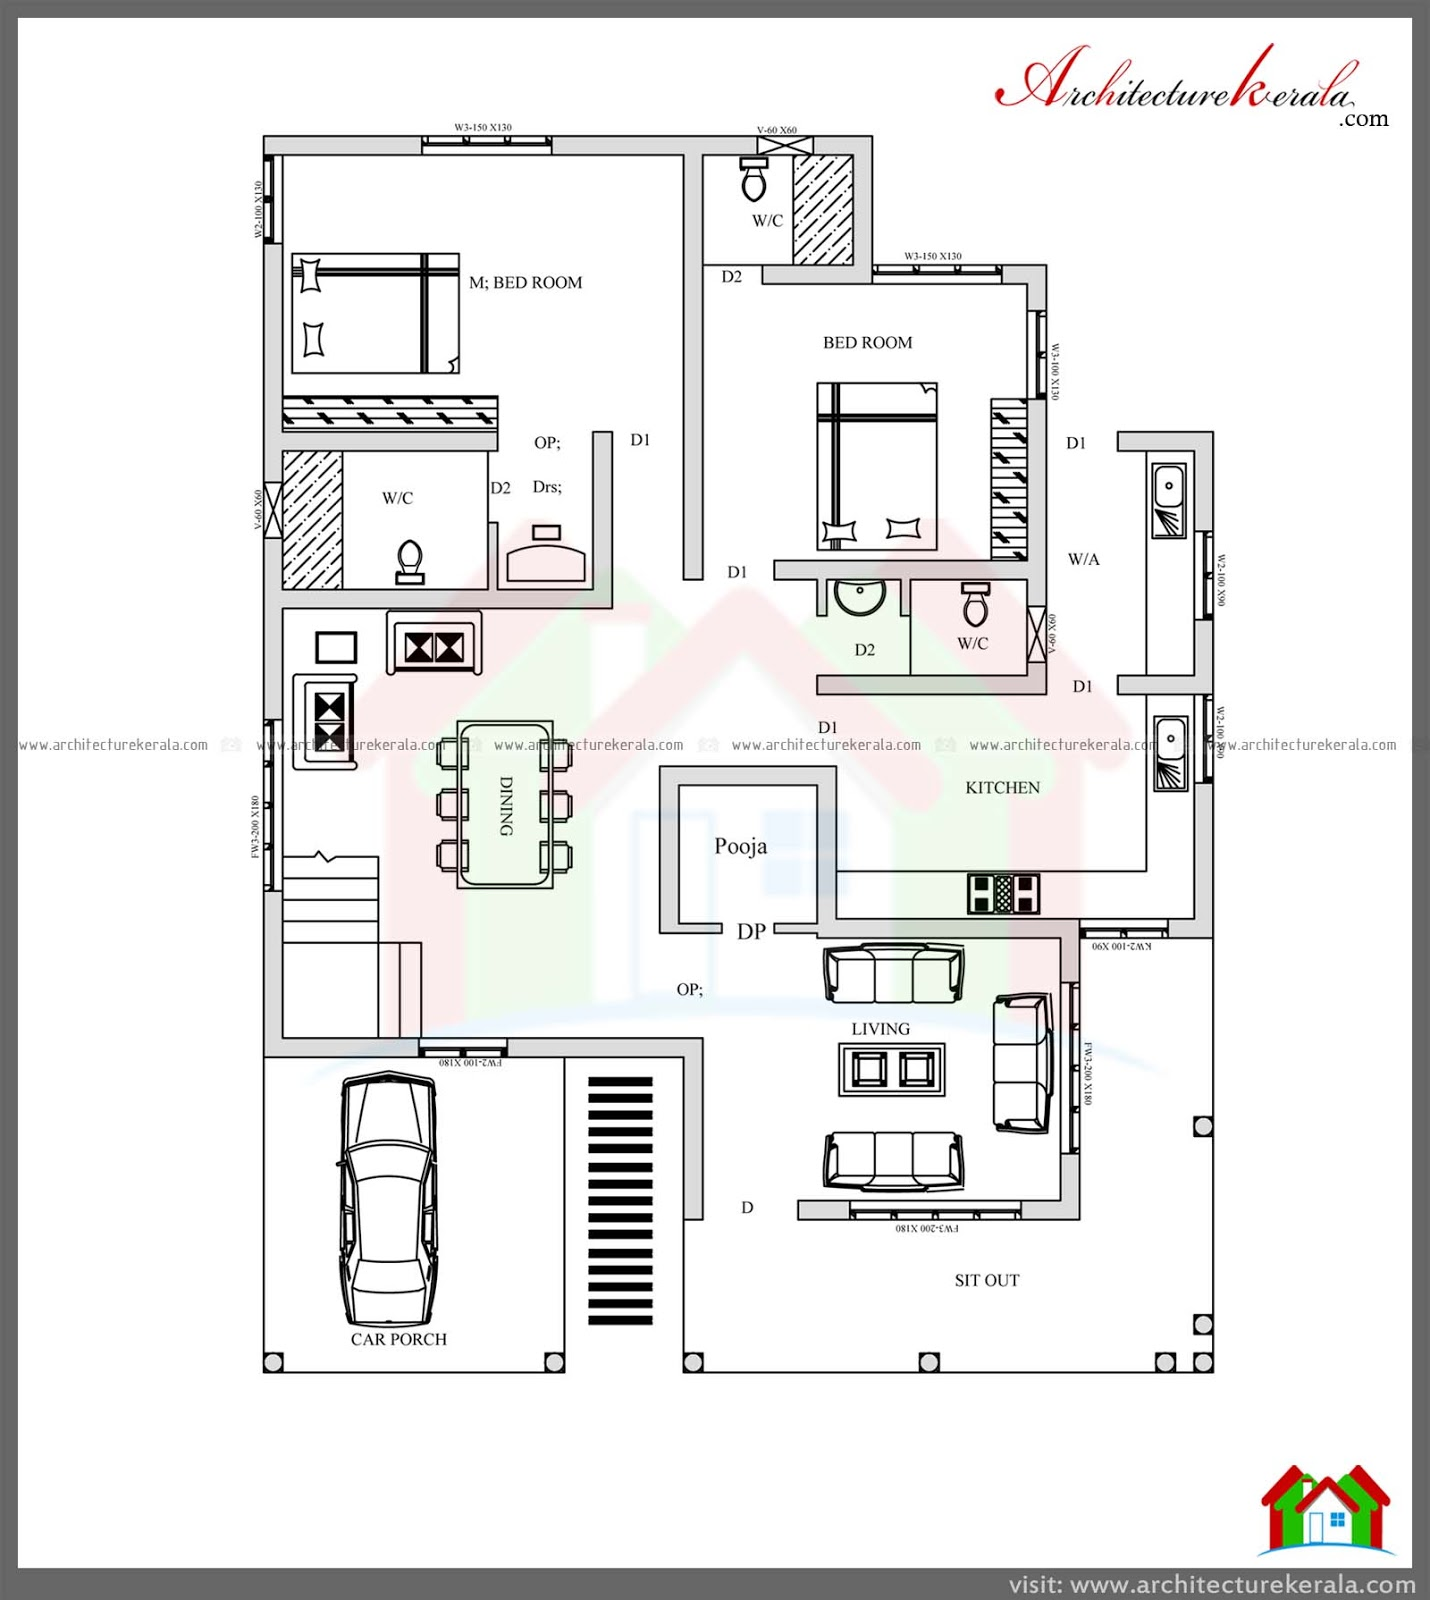 Stunning 4 bedroom kerala home design with pooja room free for House plan kerala style free download